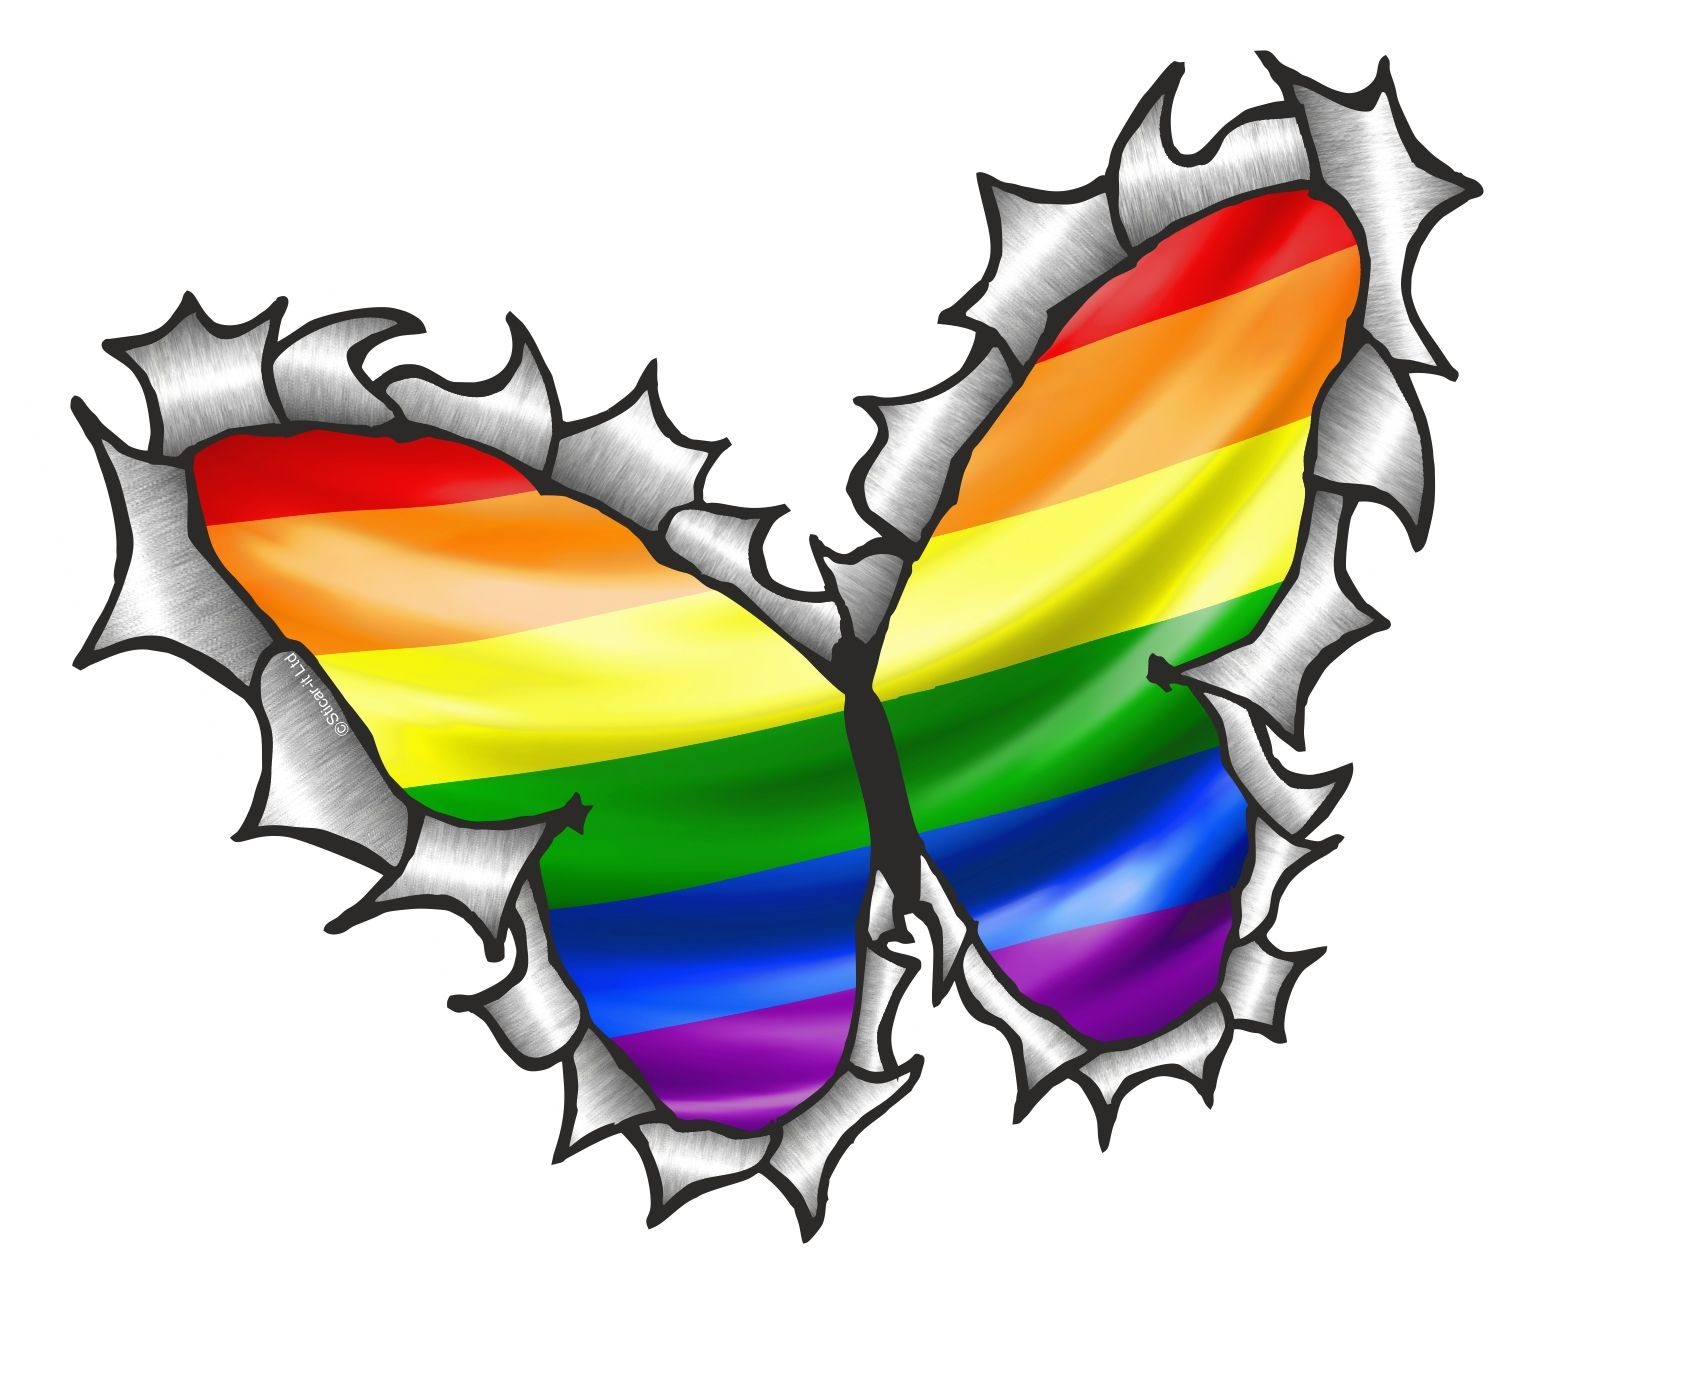 Vinyl Sticker Wall Ripped Torn Metal Butterfly Design With Gay Pride Lgbt